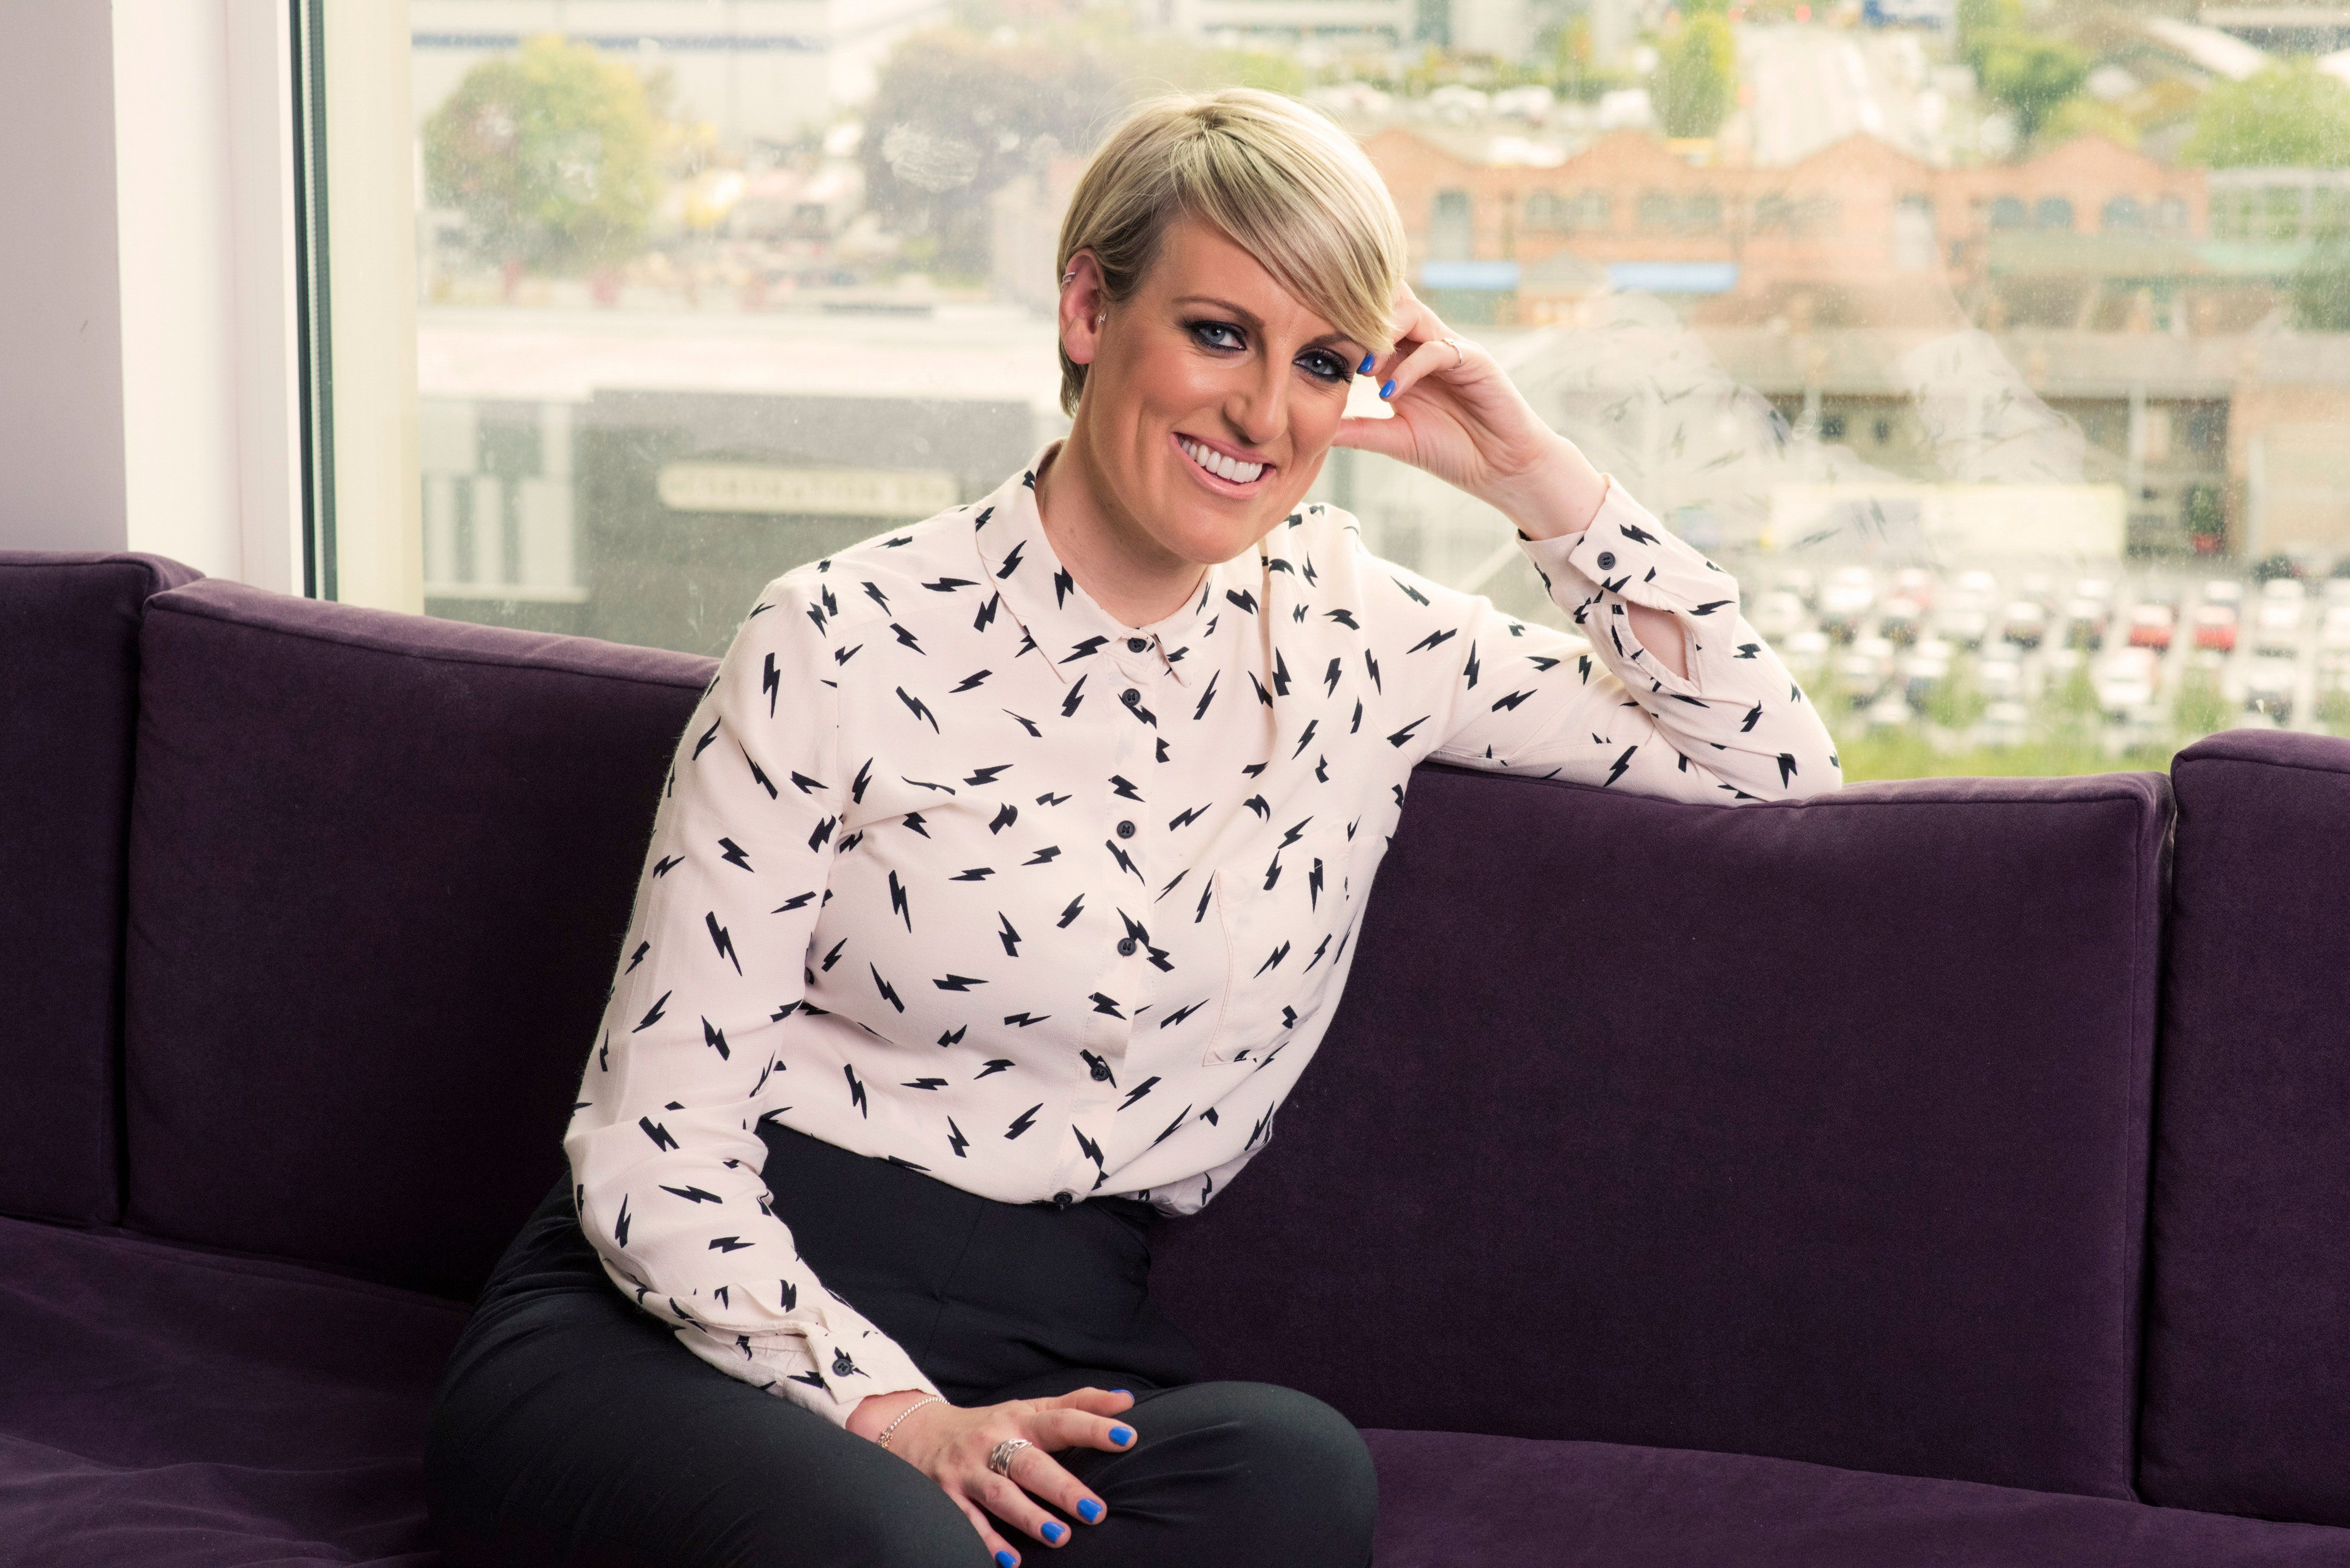 BBC Breakfast Presenter Steph McGovern Clarifies Comments About 'Posh' BBC Stars Earning